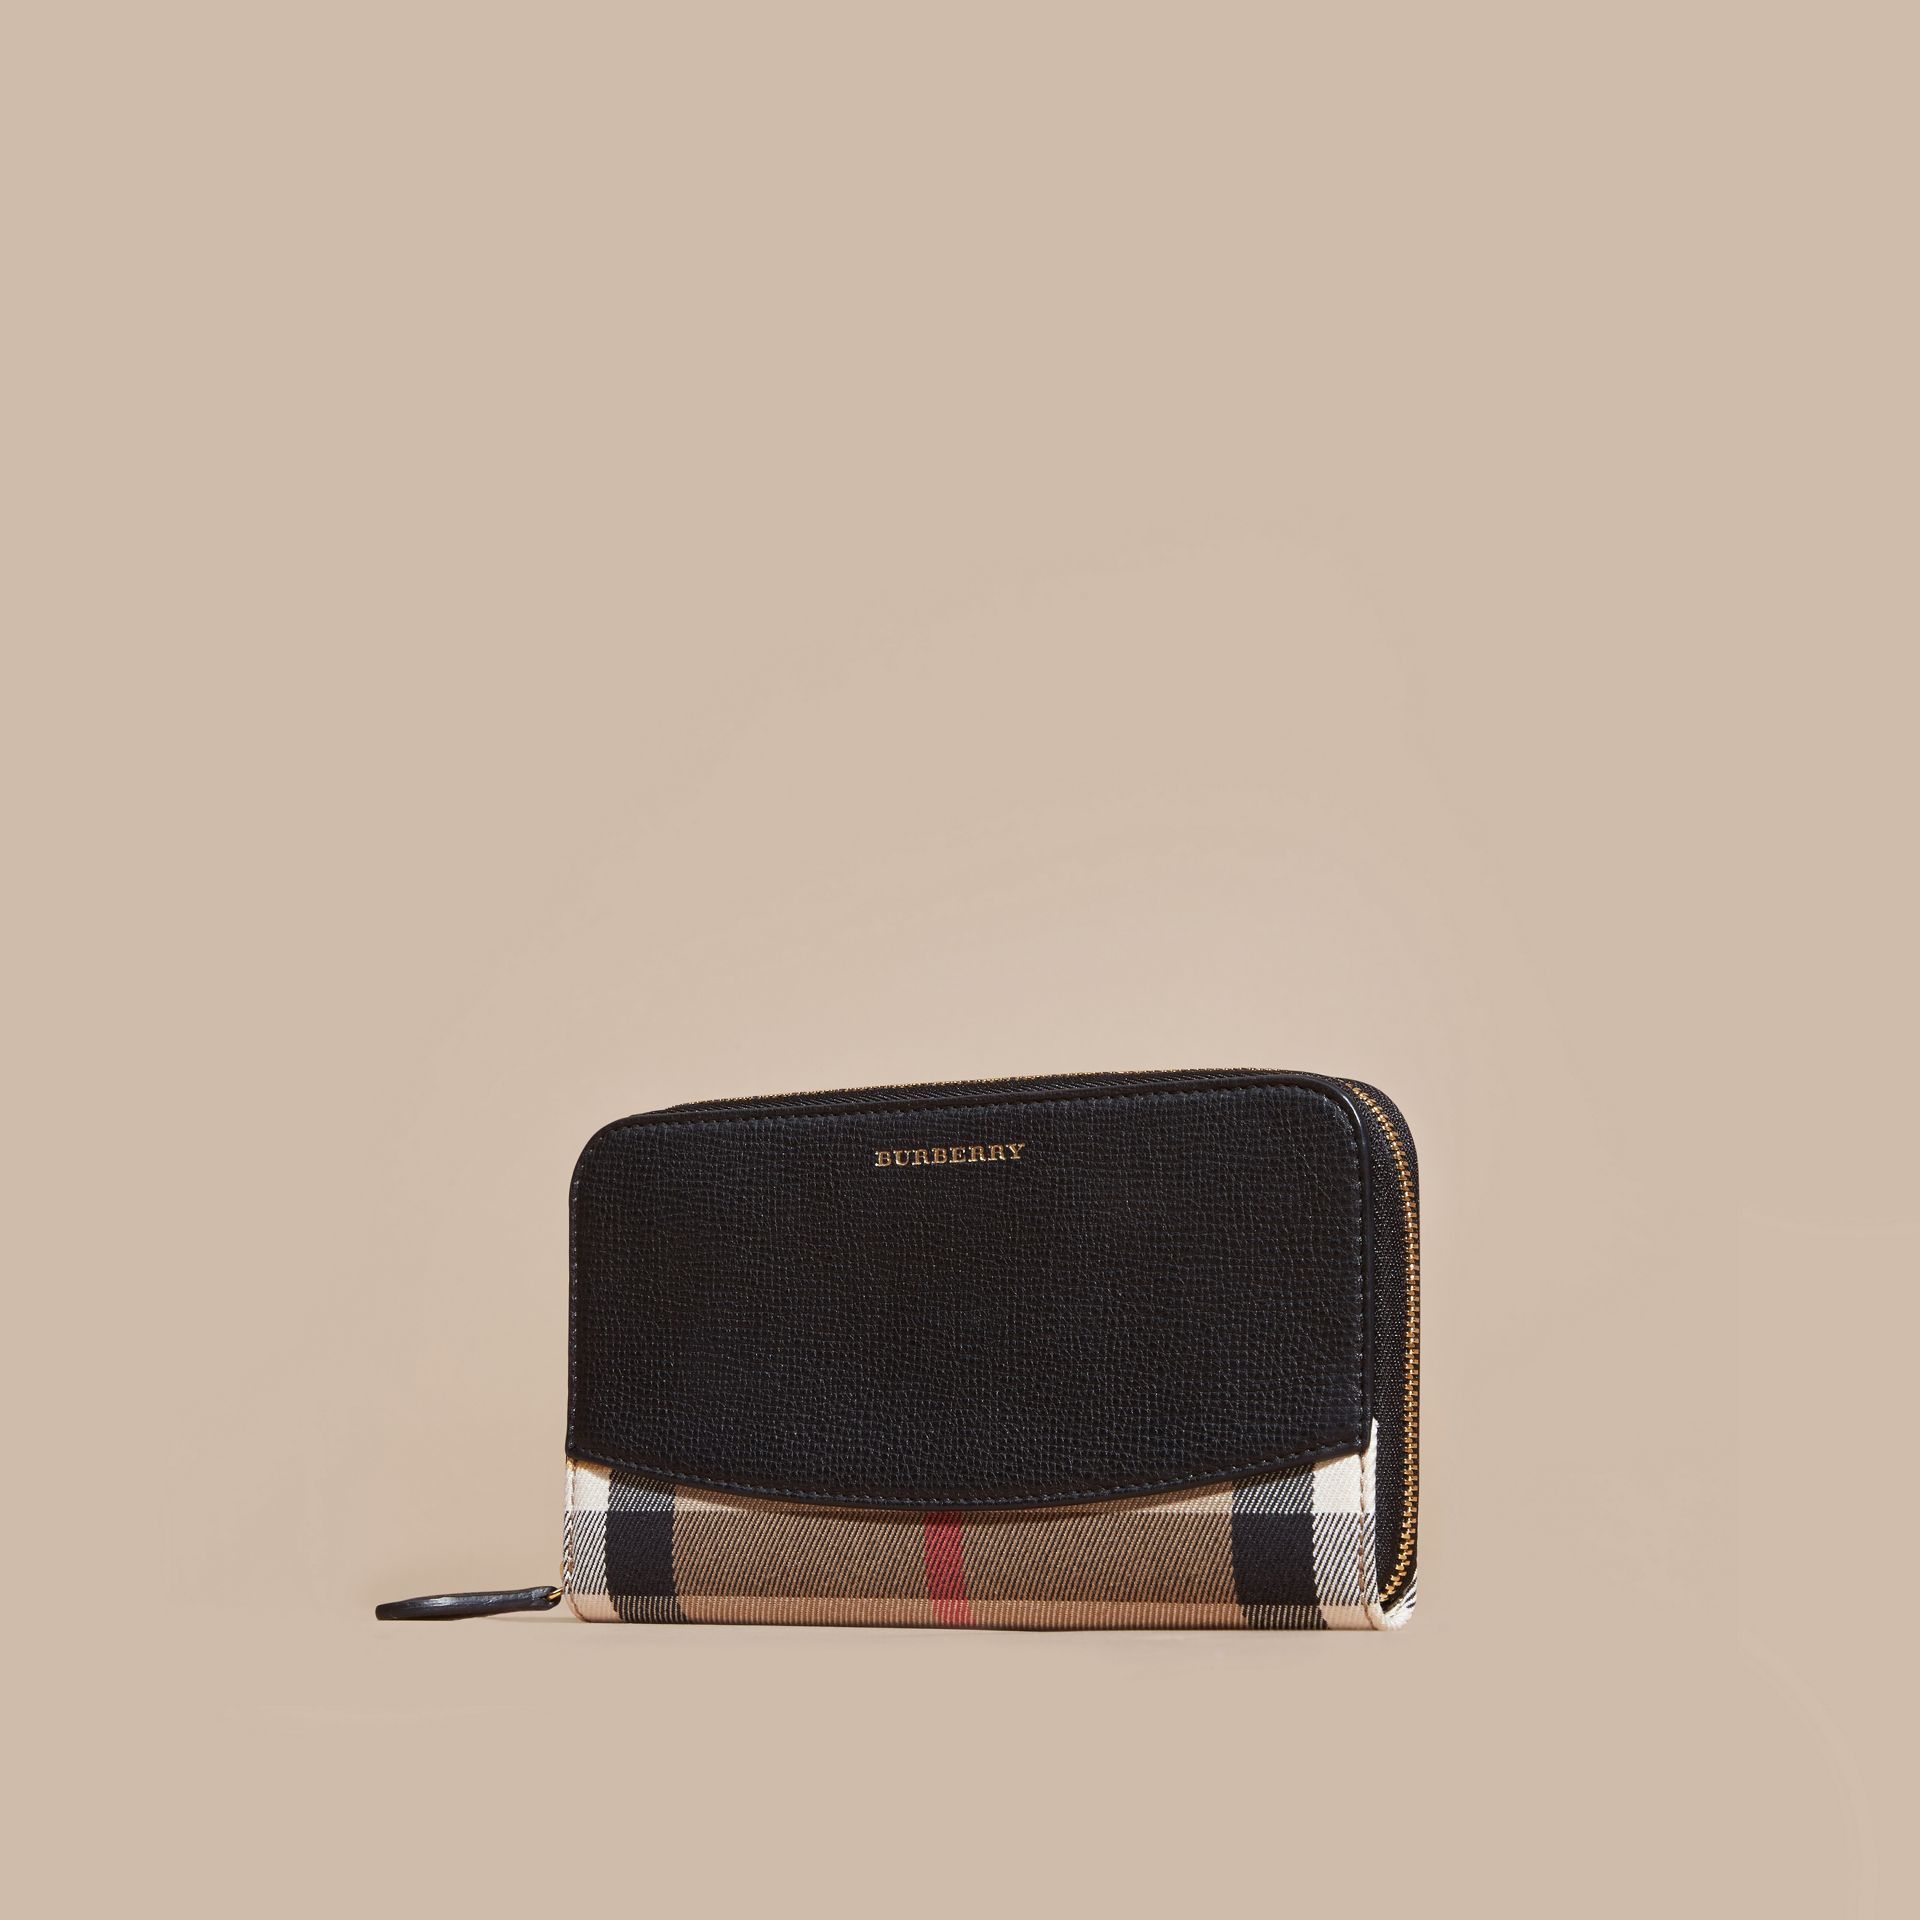 House Check and Leather Ziparound Wallet in Black - Women | Burberry Canada - gallery image 6